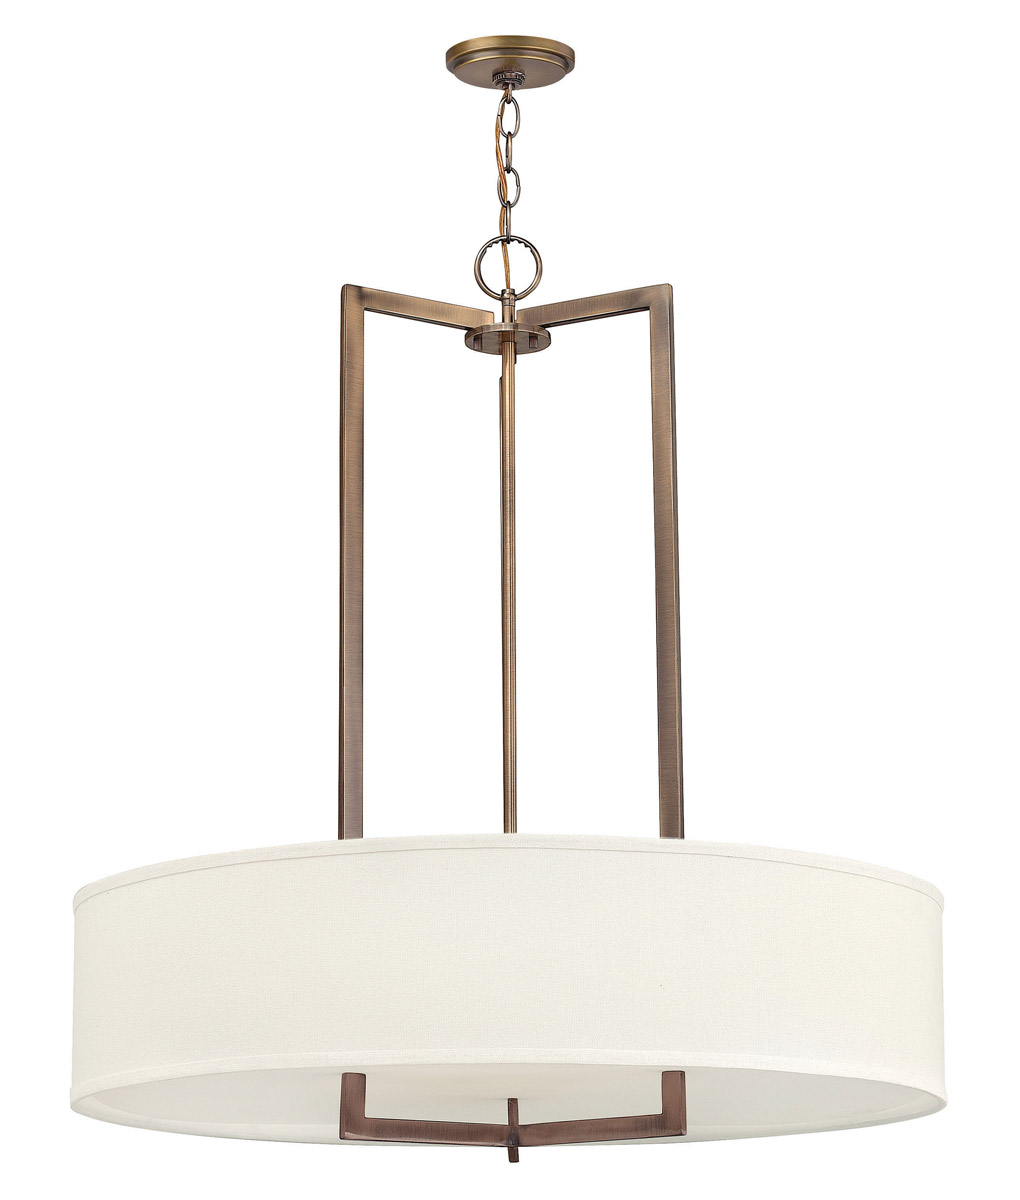 Hinkley Hampton Pendant 6Lt Chandelier